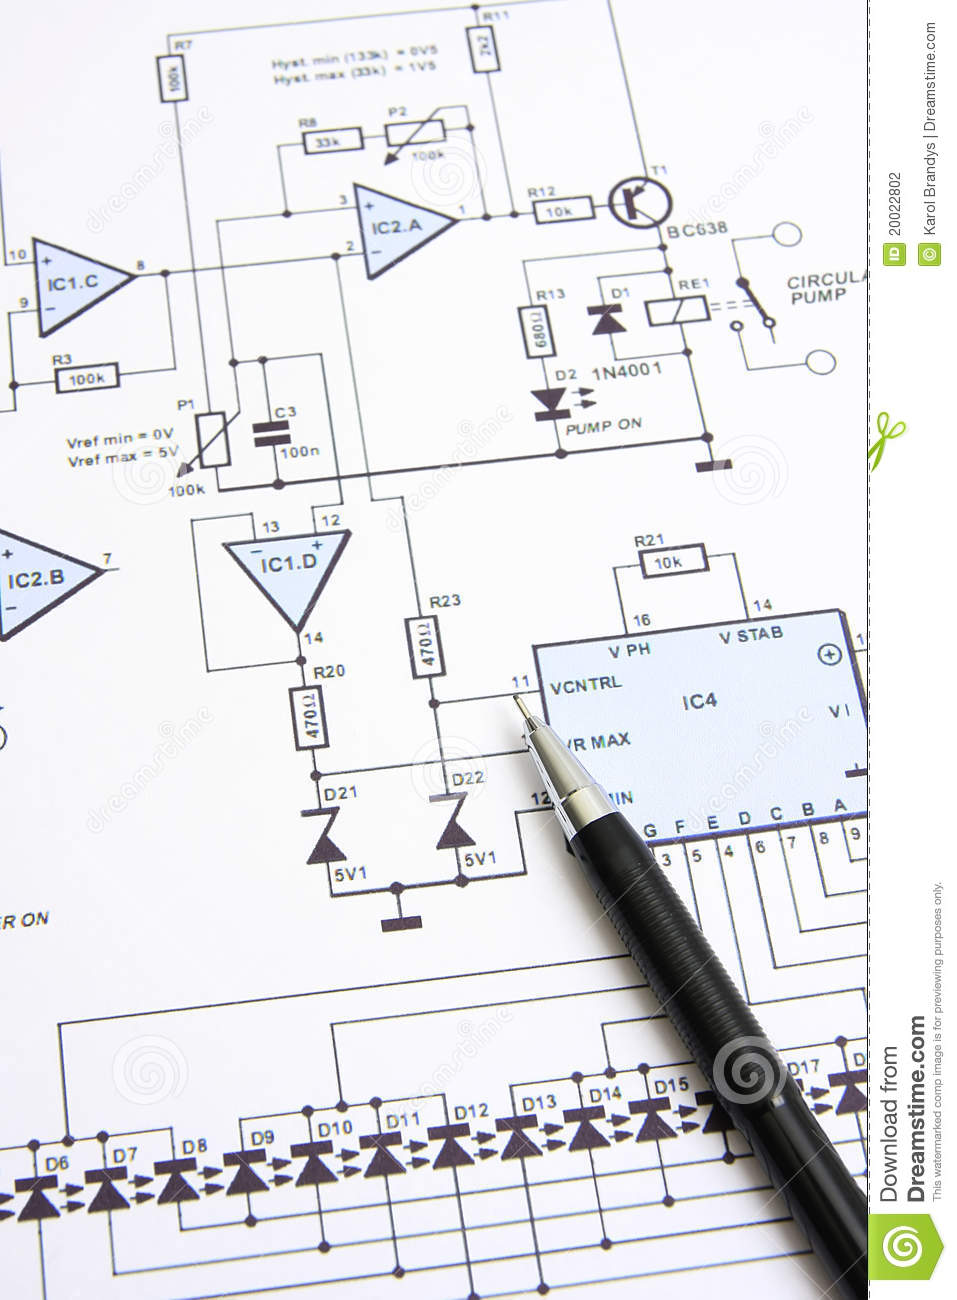 Circuit Diagram Stock Photo Image Of Property Technology 20022802 Electronic Diagrams Free